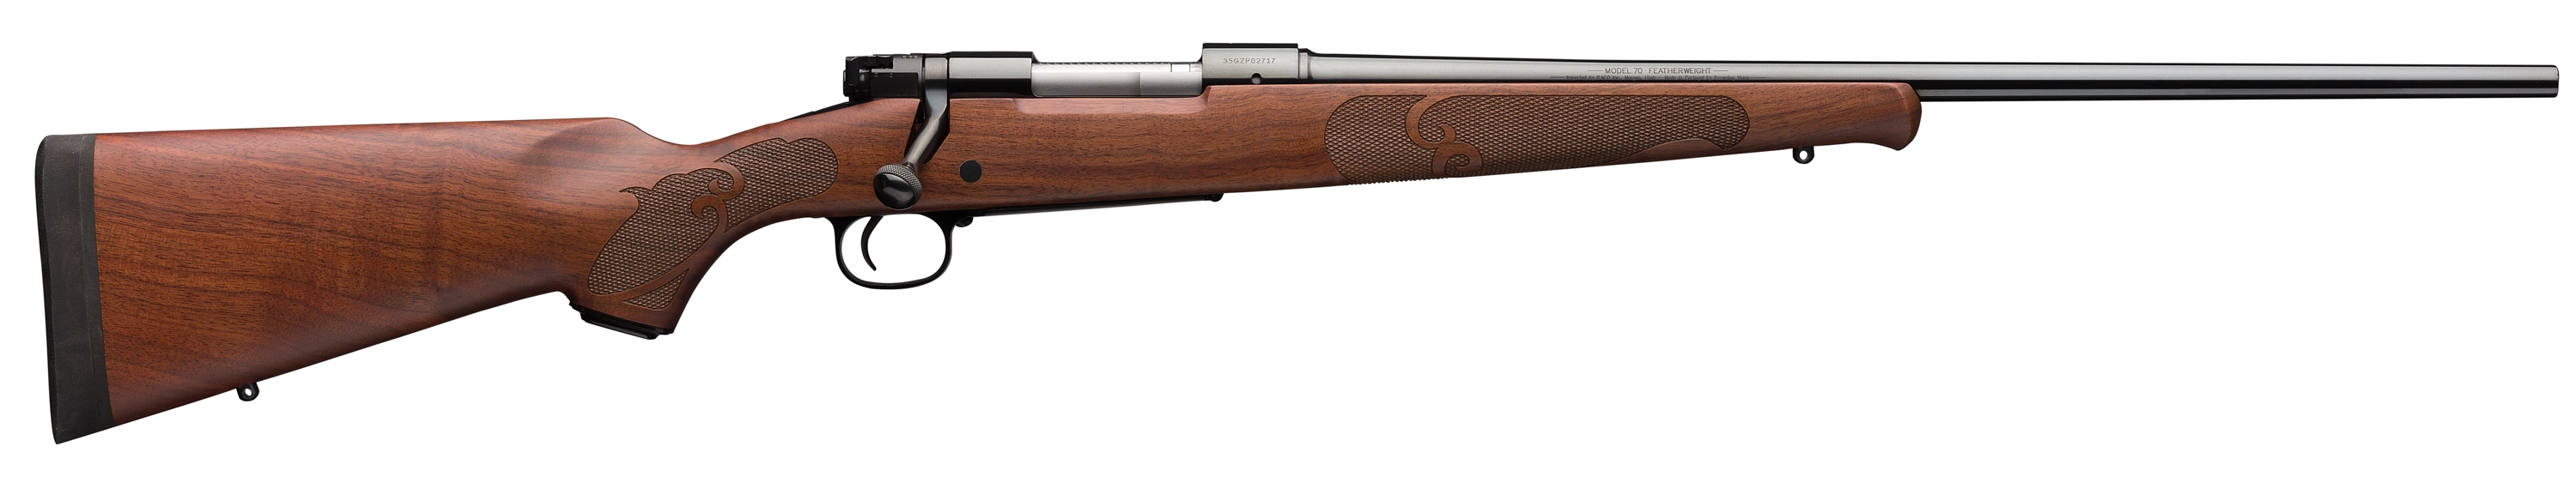 Winchester Model 70 Featherweight 25-06